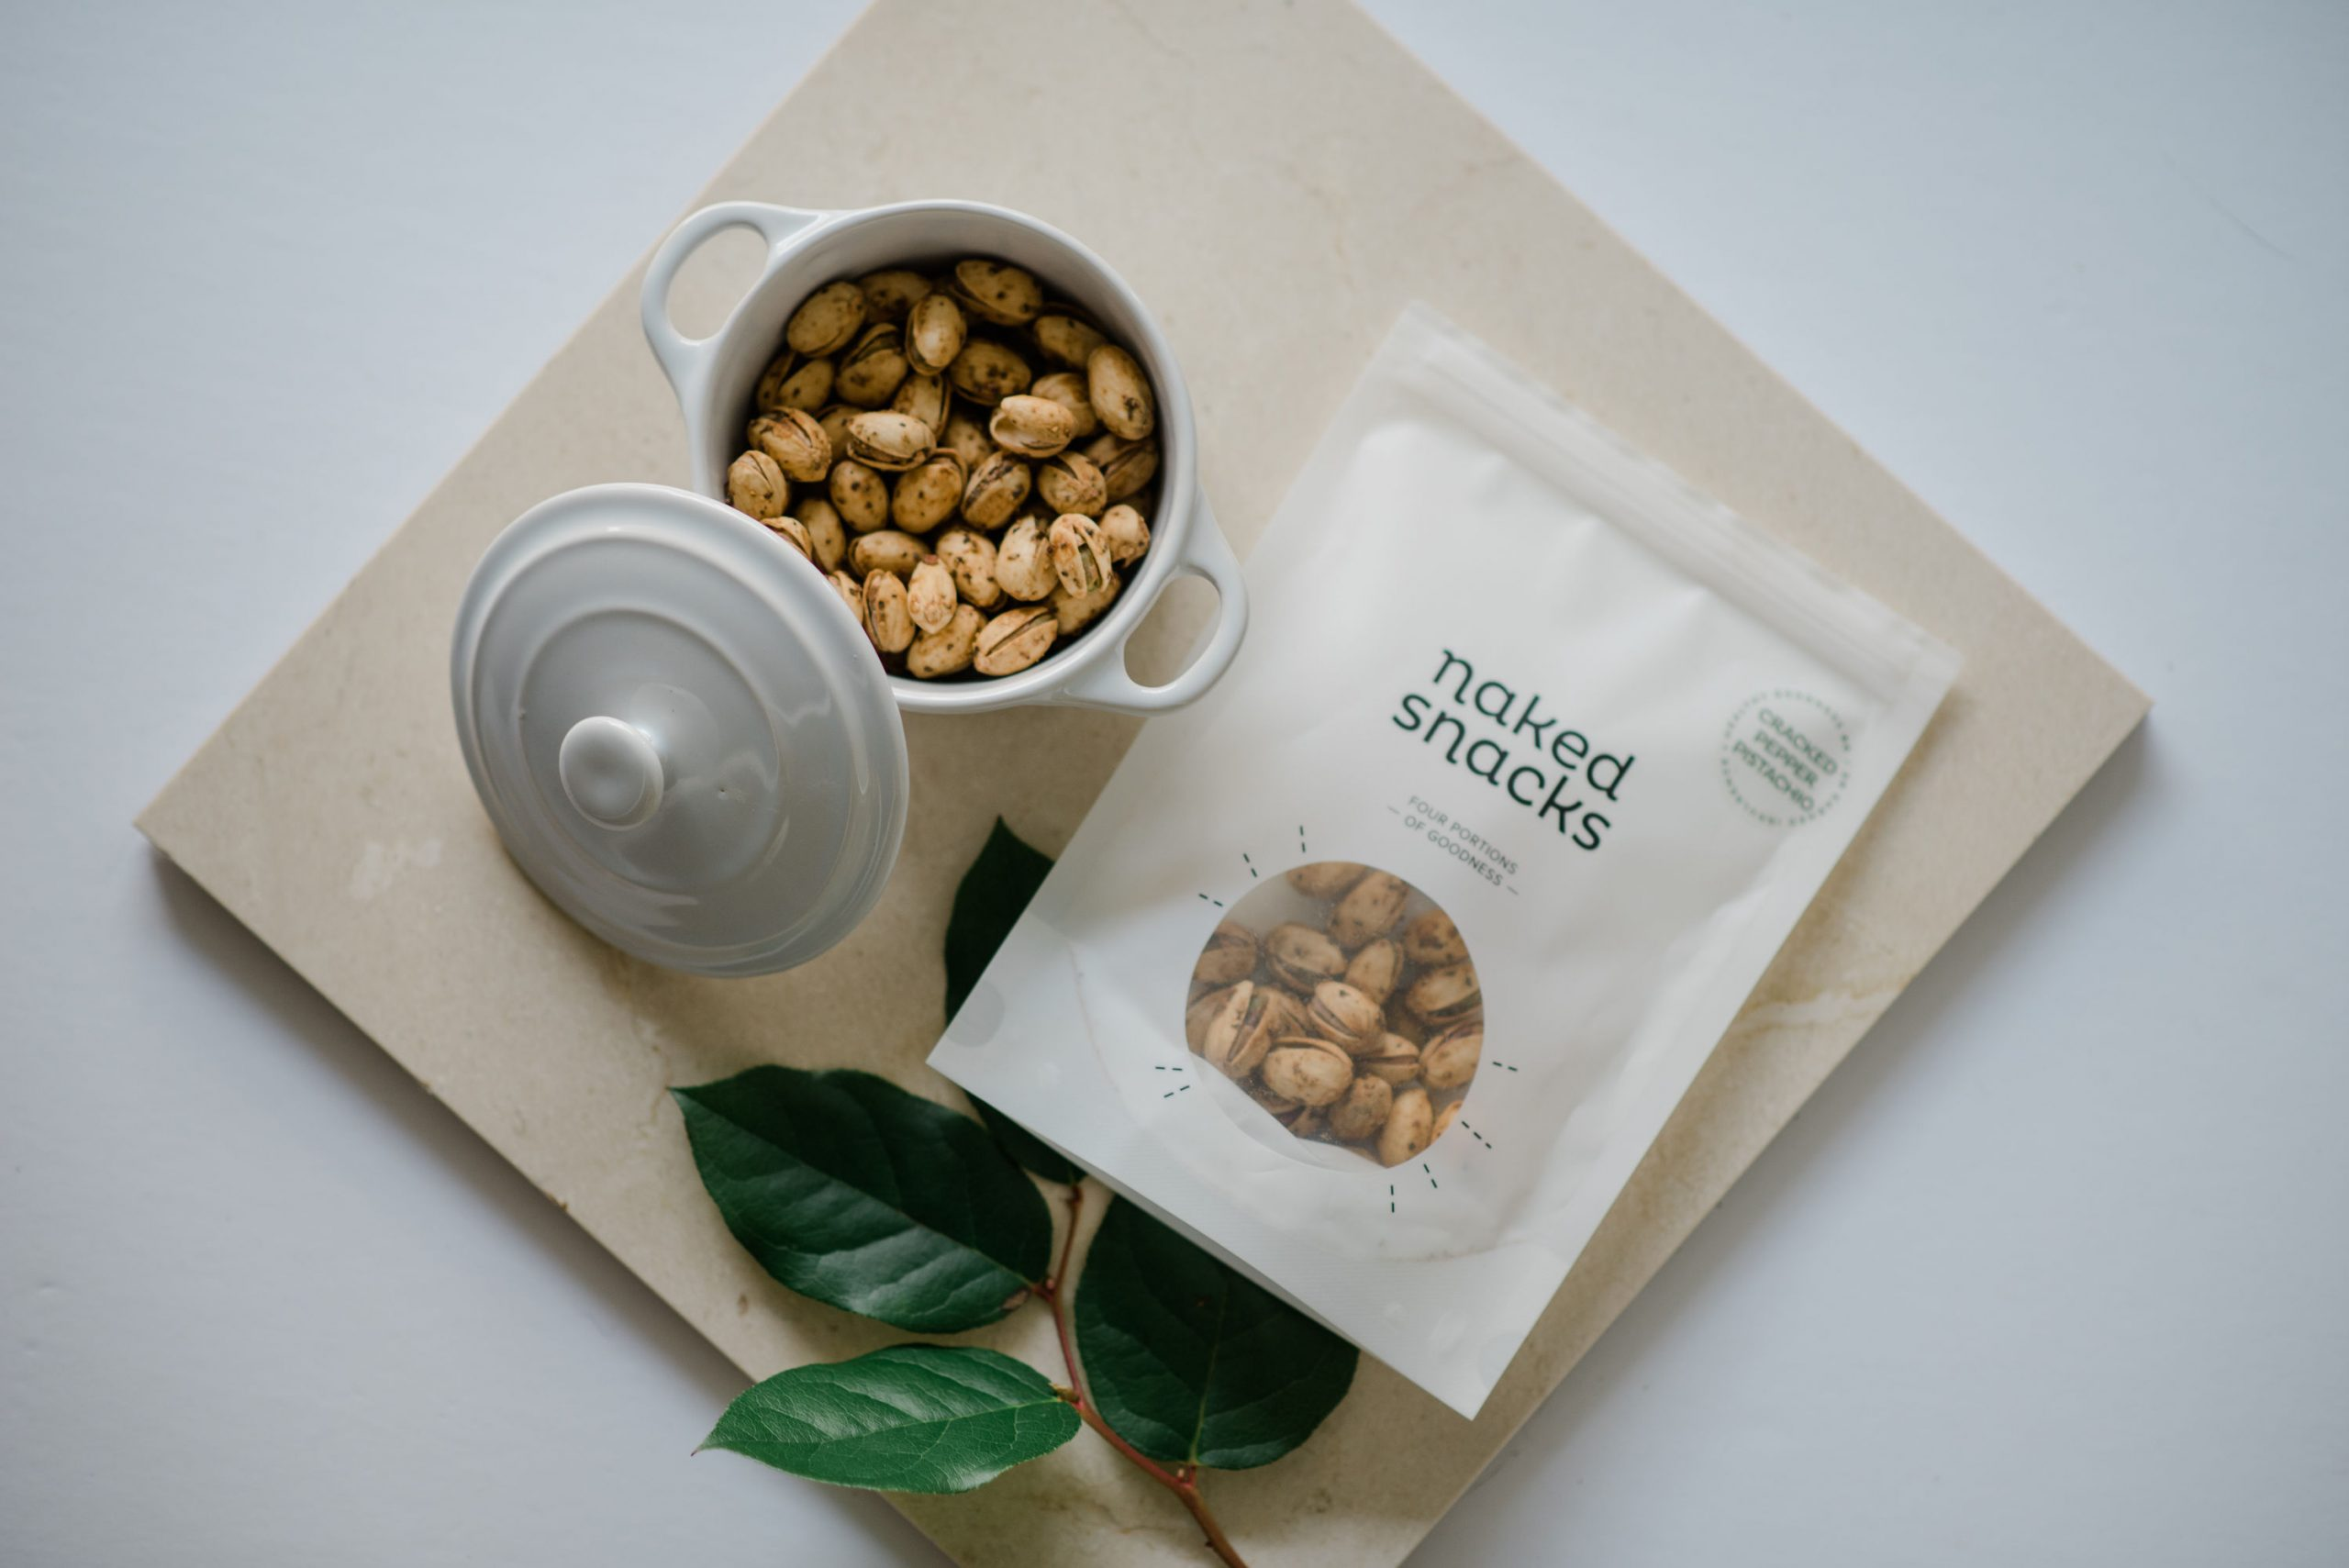 a bag of cracked pepper pistachio snacks from naked snacks